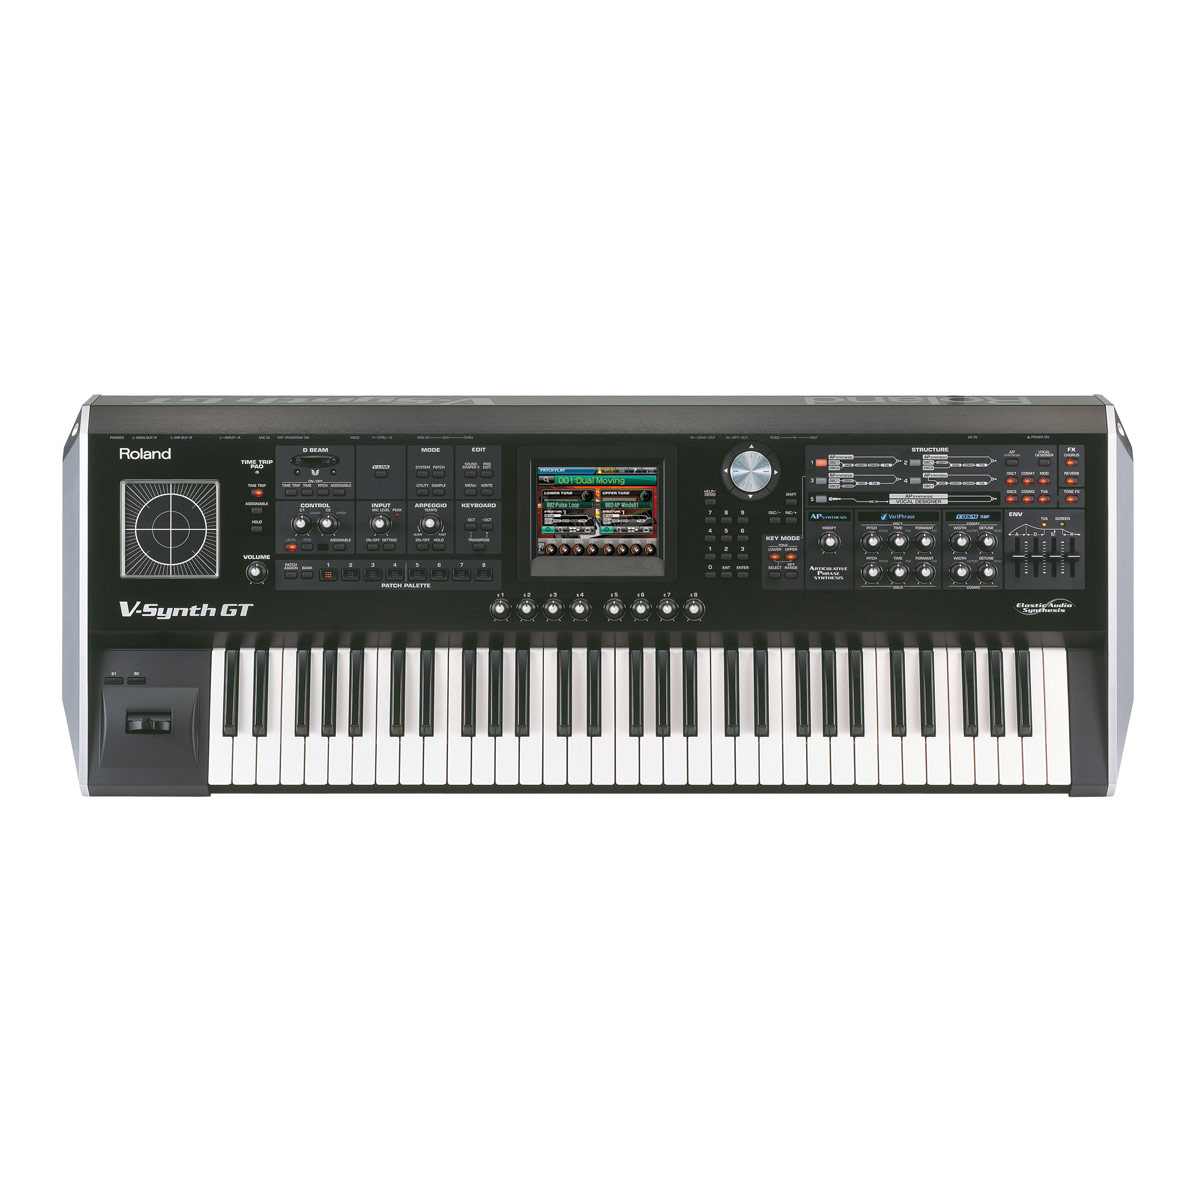 roland v synth gt advanced elastic audio synthesizer v synthgt electronic keyboard buy. Black Bedroom Furniture Sets. Home Design Ideas